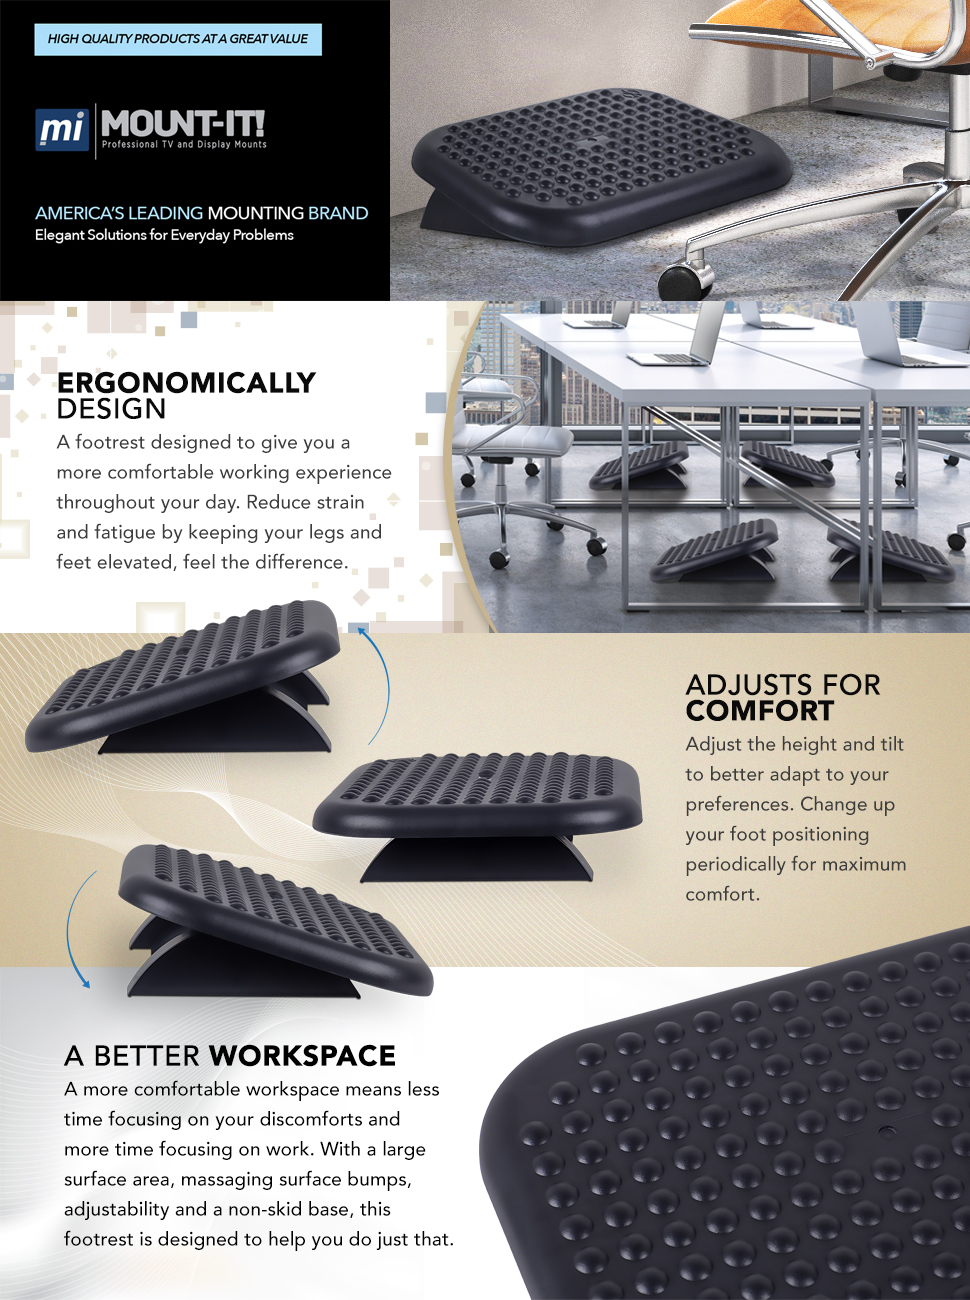 mountit foot rest under desk ergonomic footrest reduces muscle strain and fatigue adjustable angle office foot rest stool 176 x 132 in black